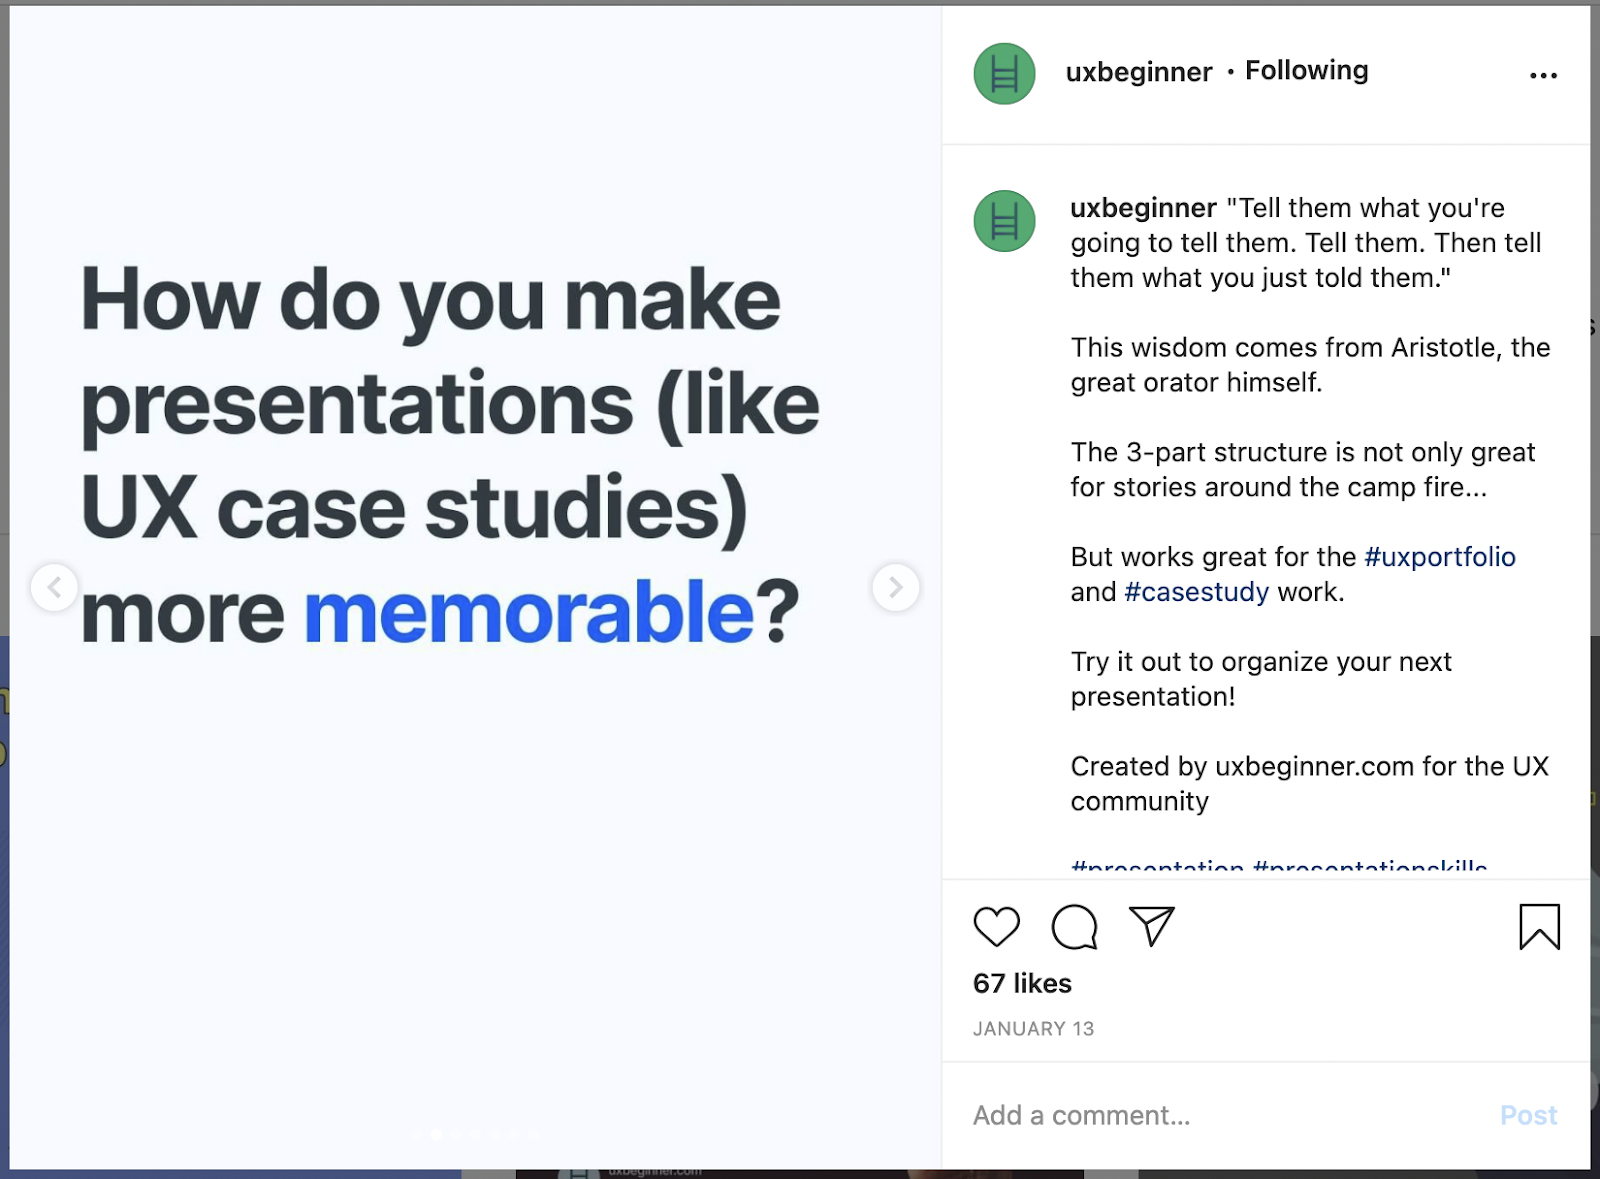 """slide #2 of Instagram post which reads, """"How do you make presentations (like UX case studies) more memorable?"""